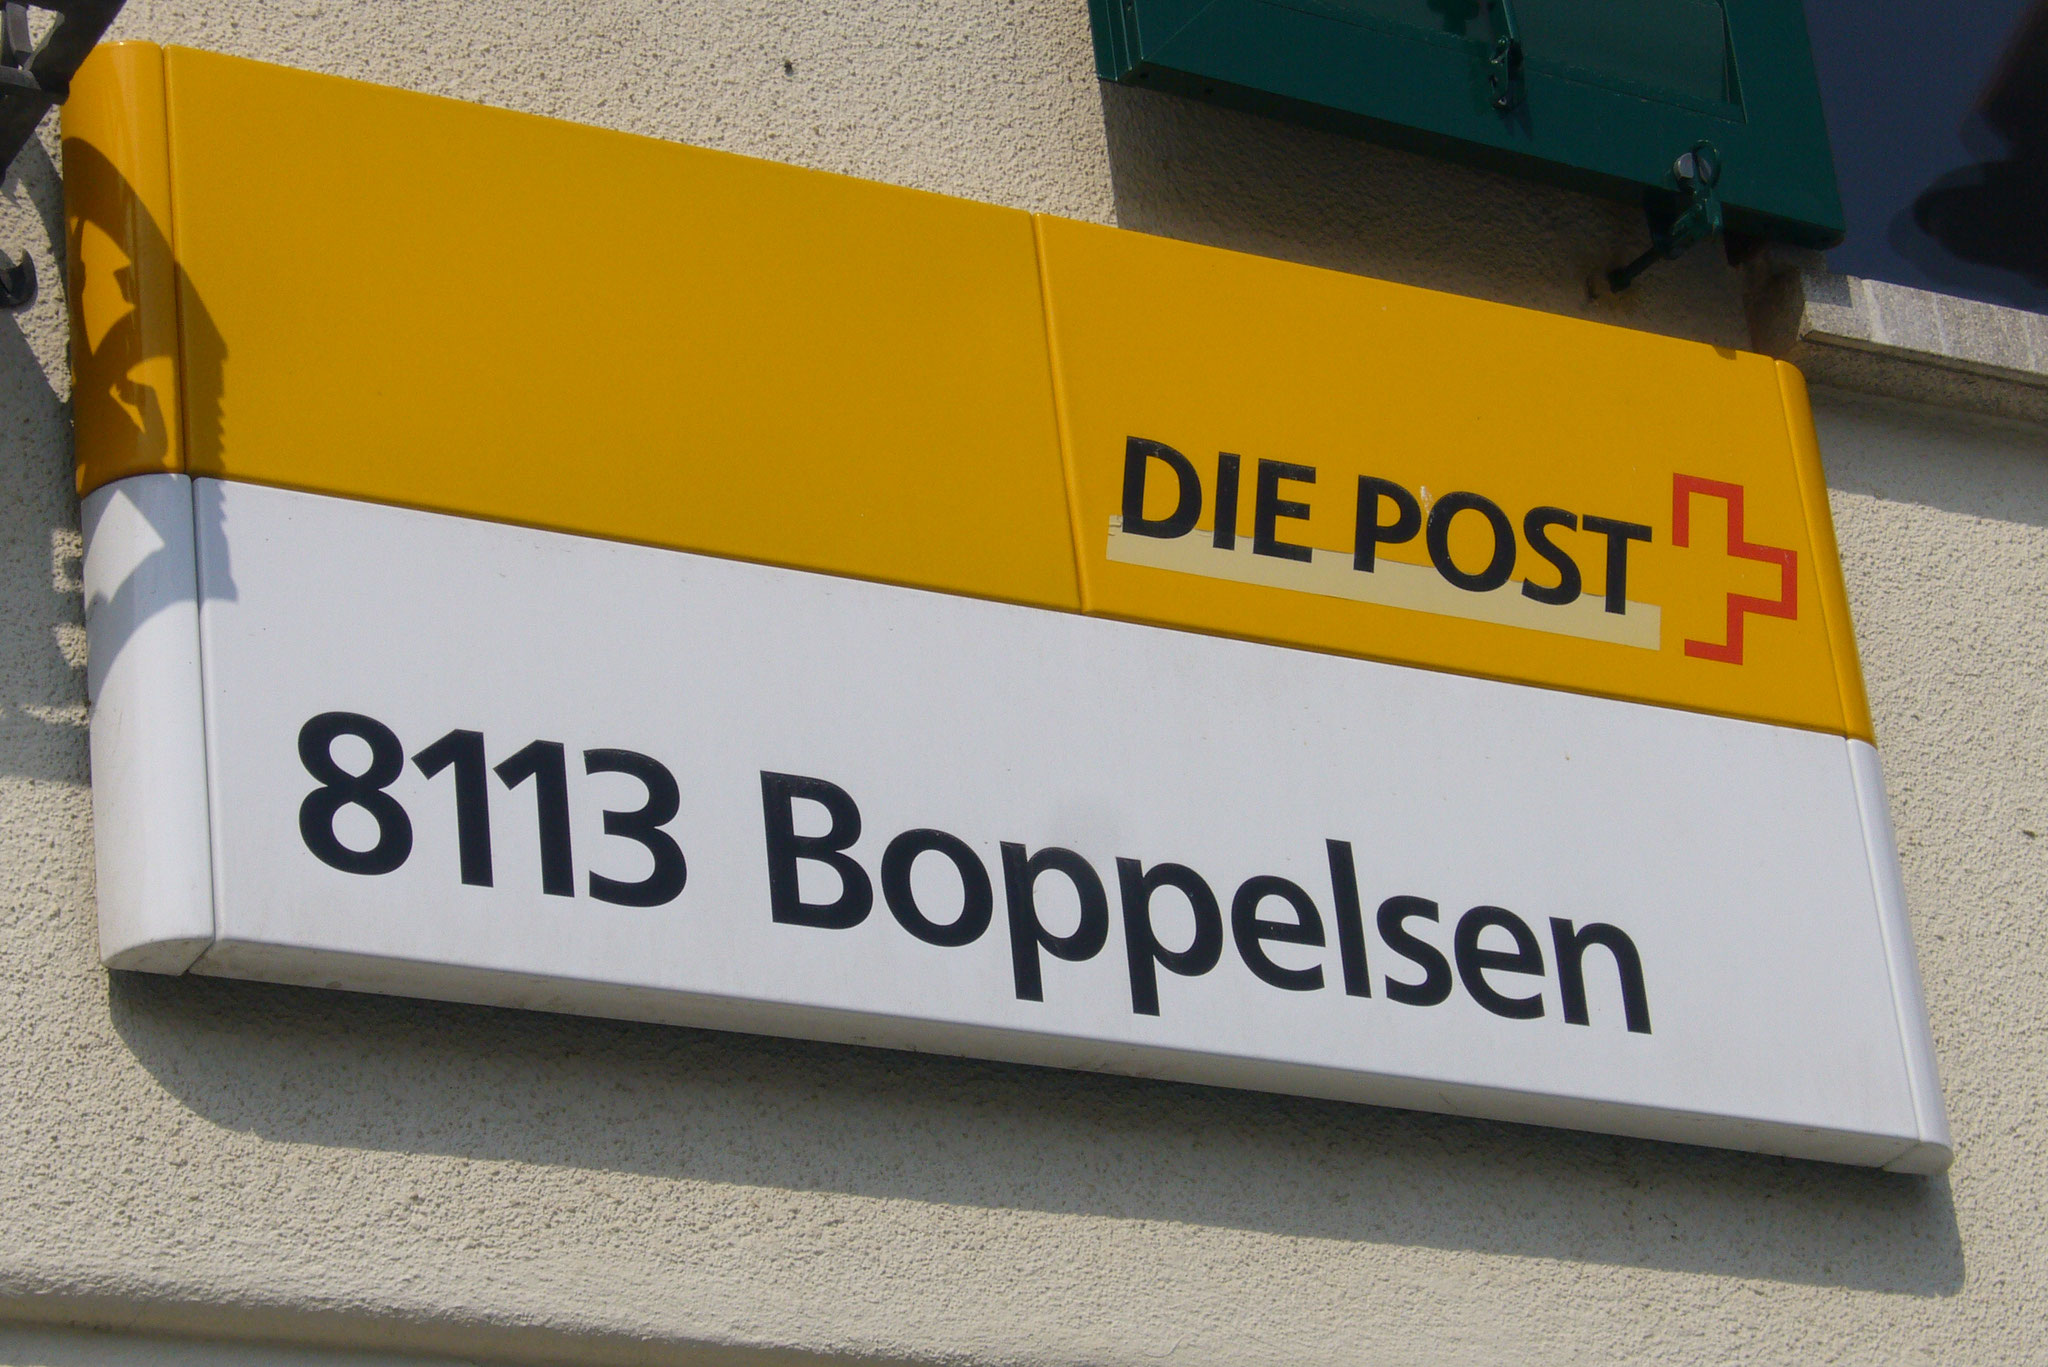 DIE POST gestern, April 2008